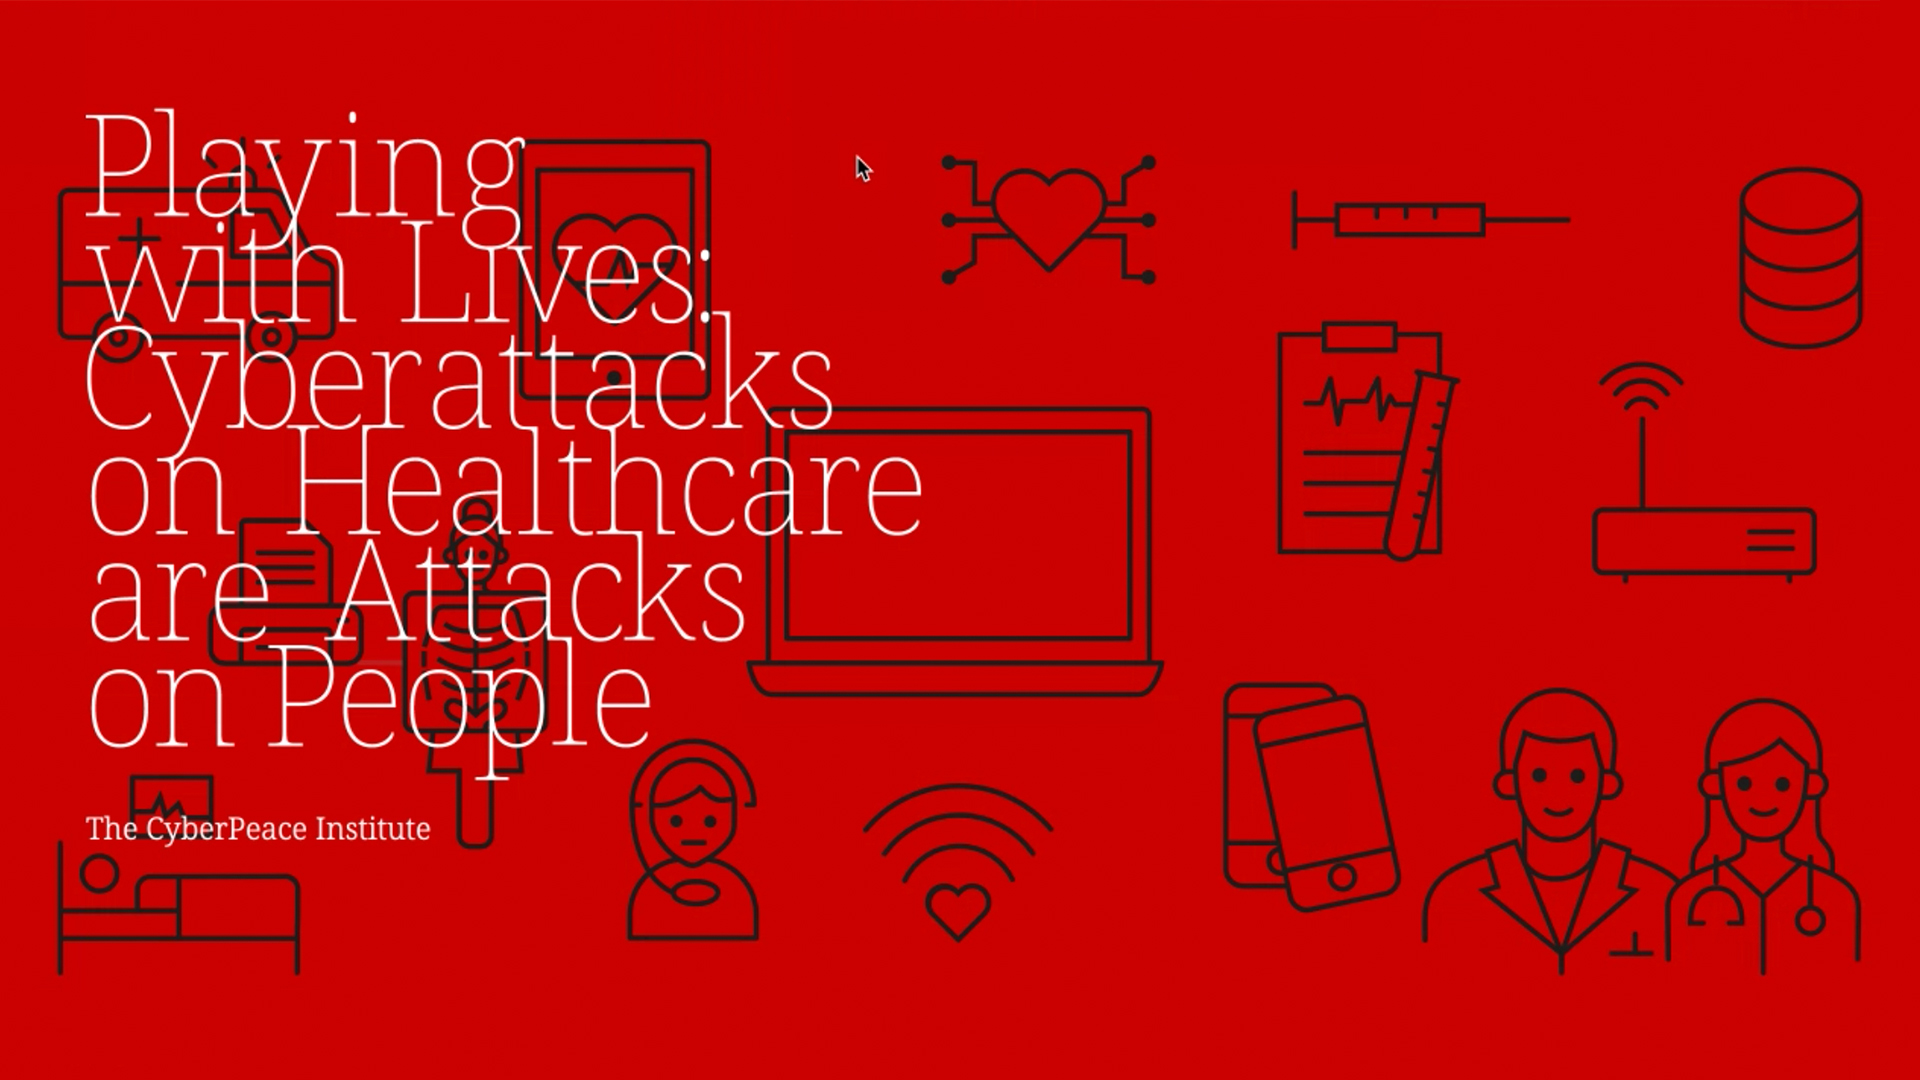 Criminals and Hostile States Attack Healthcare with Impunity; the CyberPeace Institute Calls for Accountability